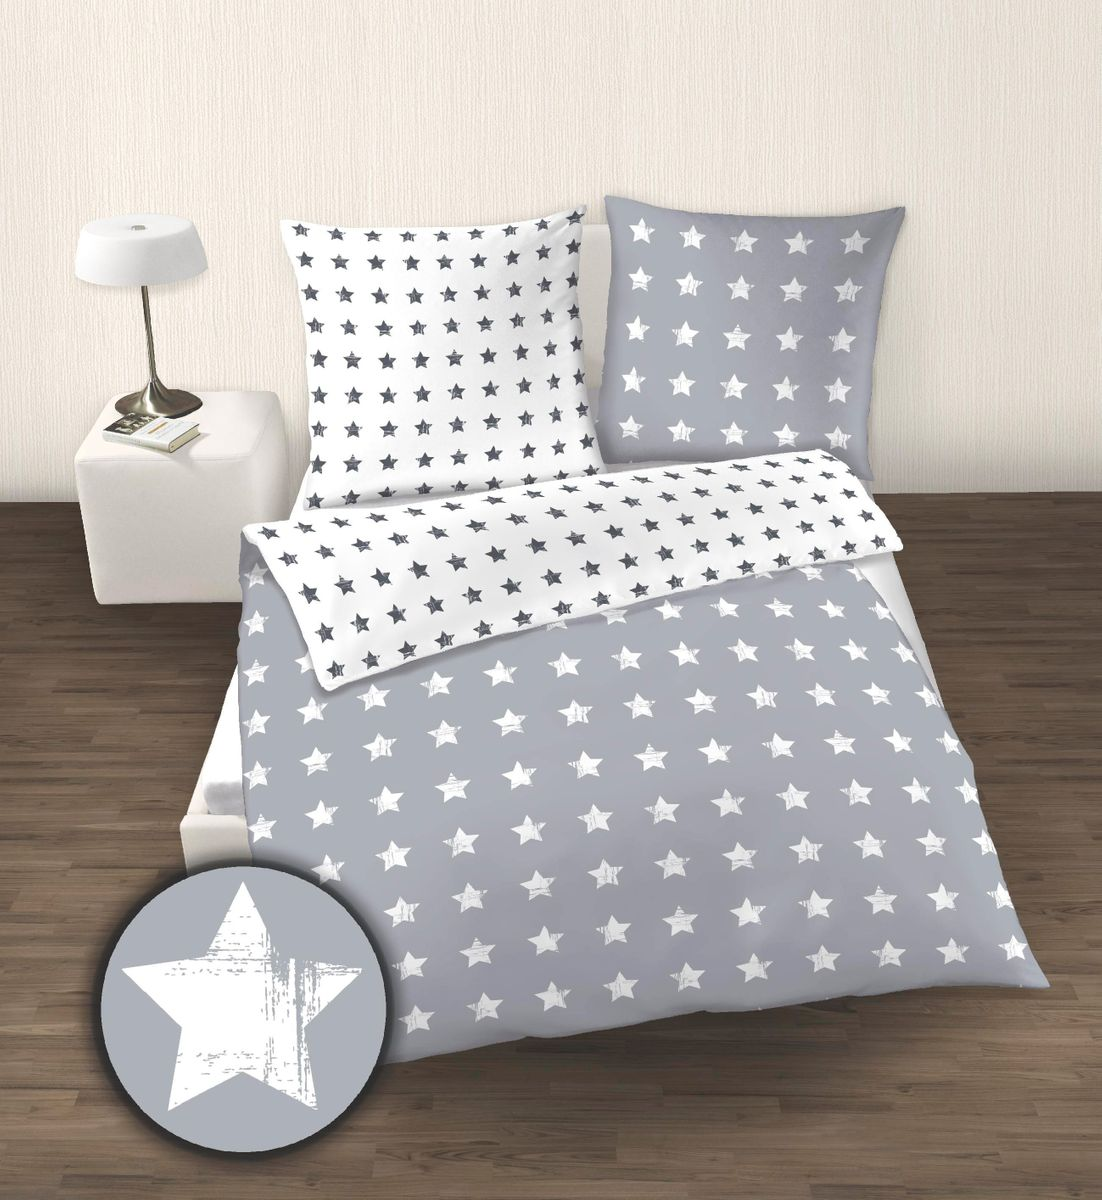 seersucker bettw sche 2 tlg 135x200cm stars sterne minze. Black Bedroom Furniture Sets. Home Design Ideas